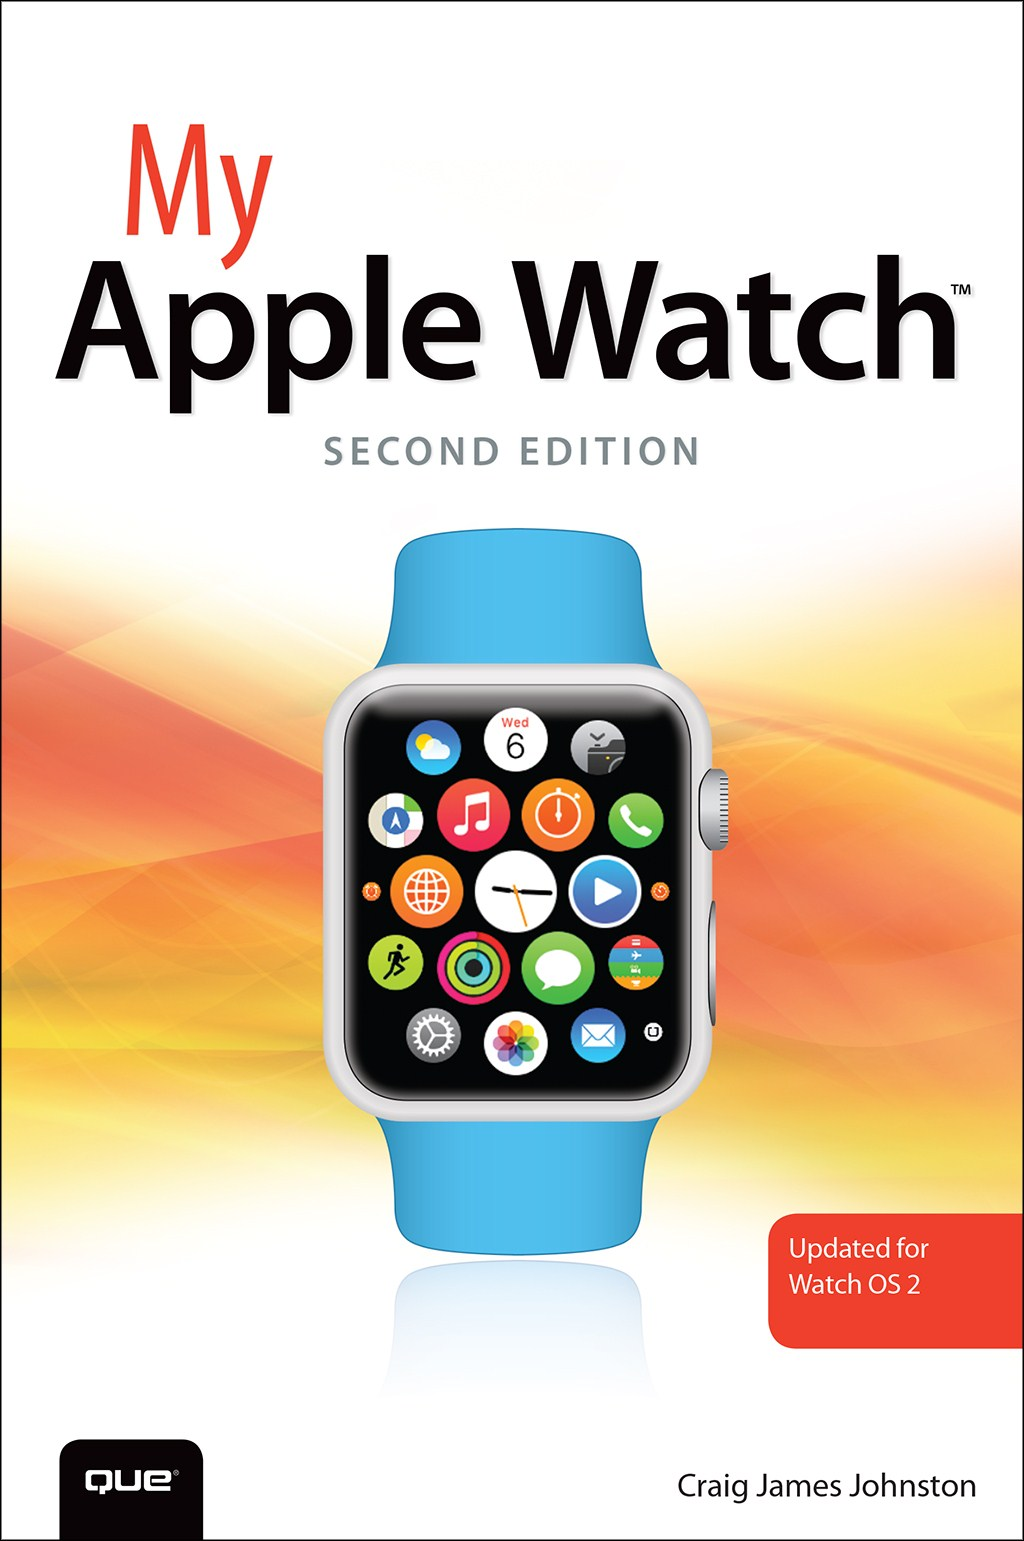 My Apple Watch (updated for Watch OS 2.0), 2nd Edition